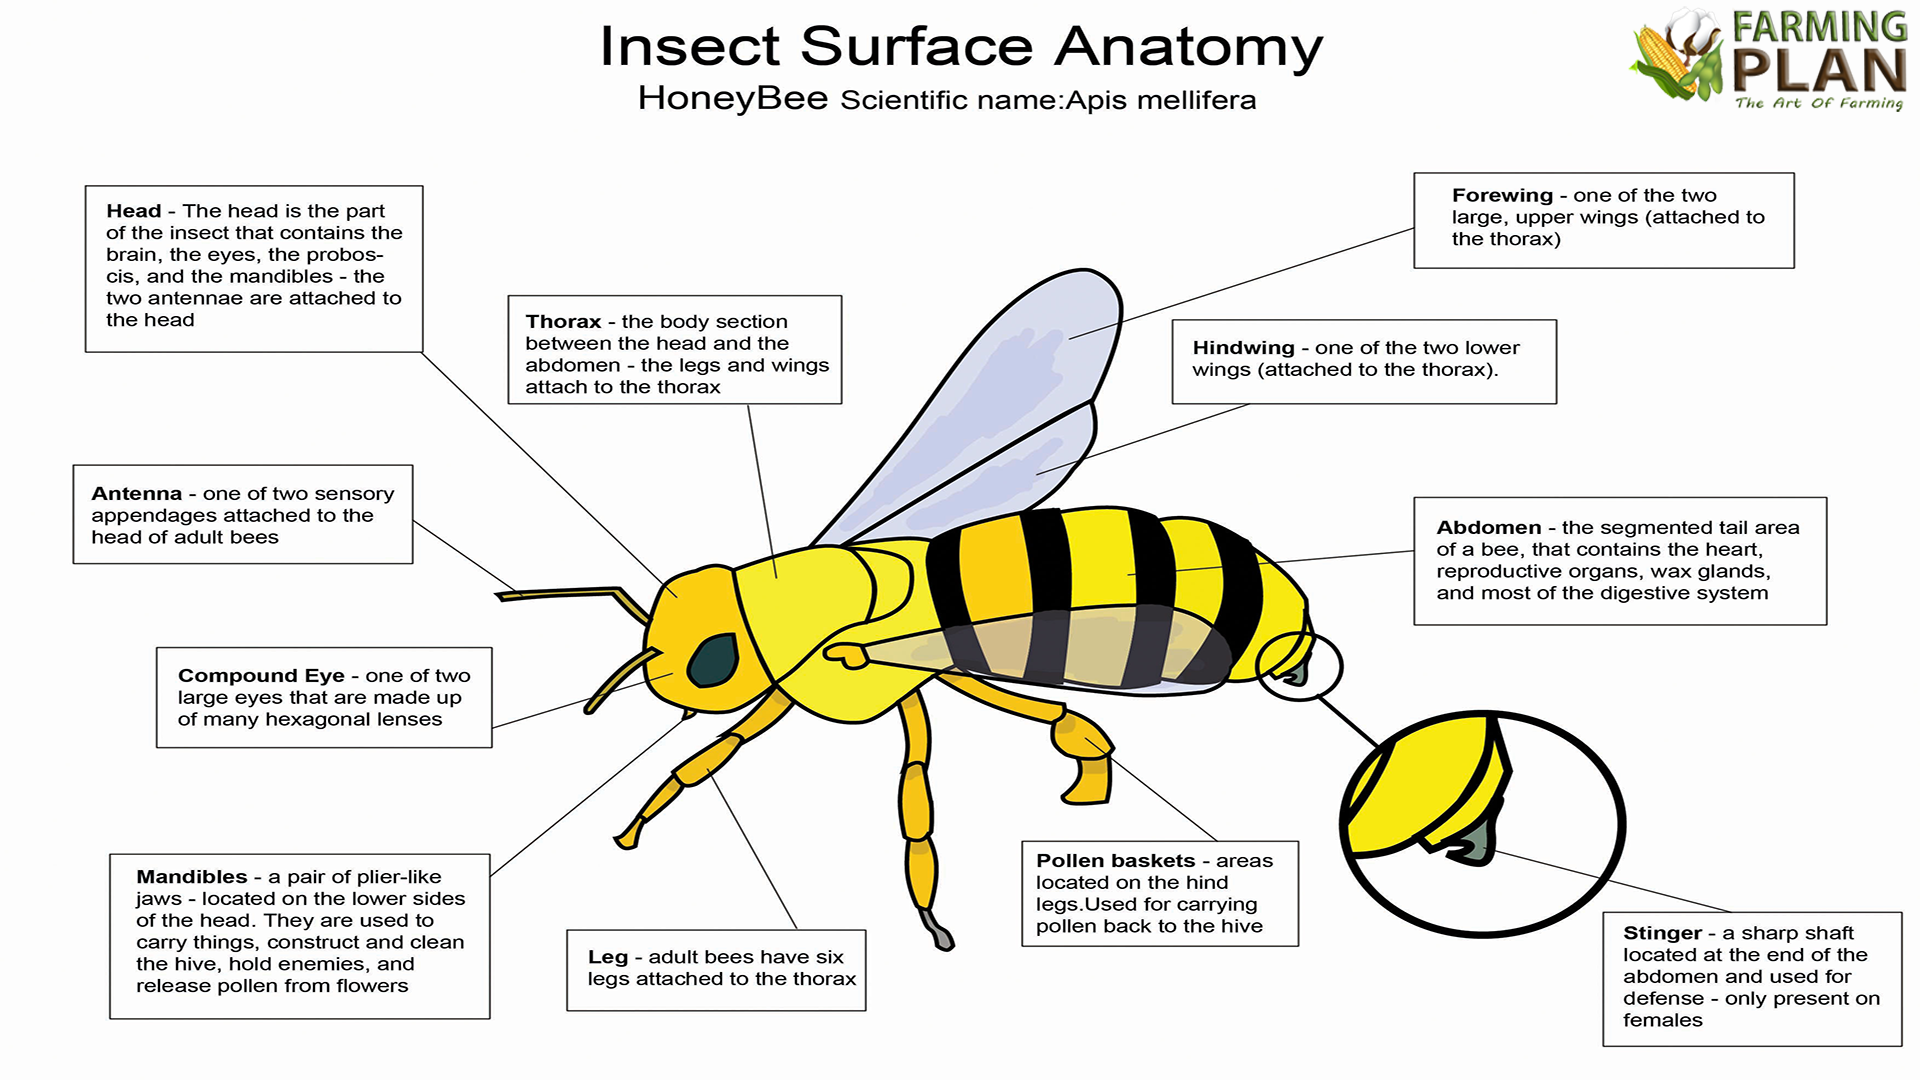 the external and internal anatomy of the honey bee corresponds png 1920x1080 honey bee body parts [ 1920 x 1080 Pixel ]